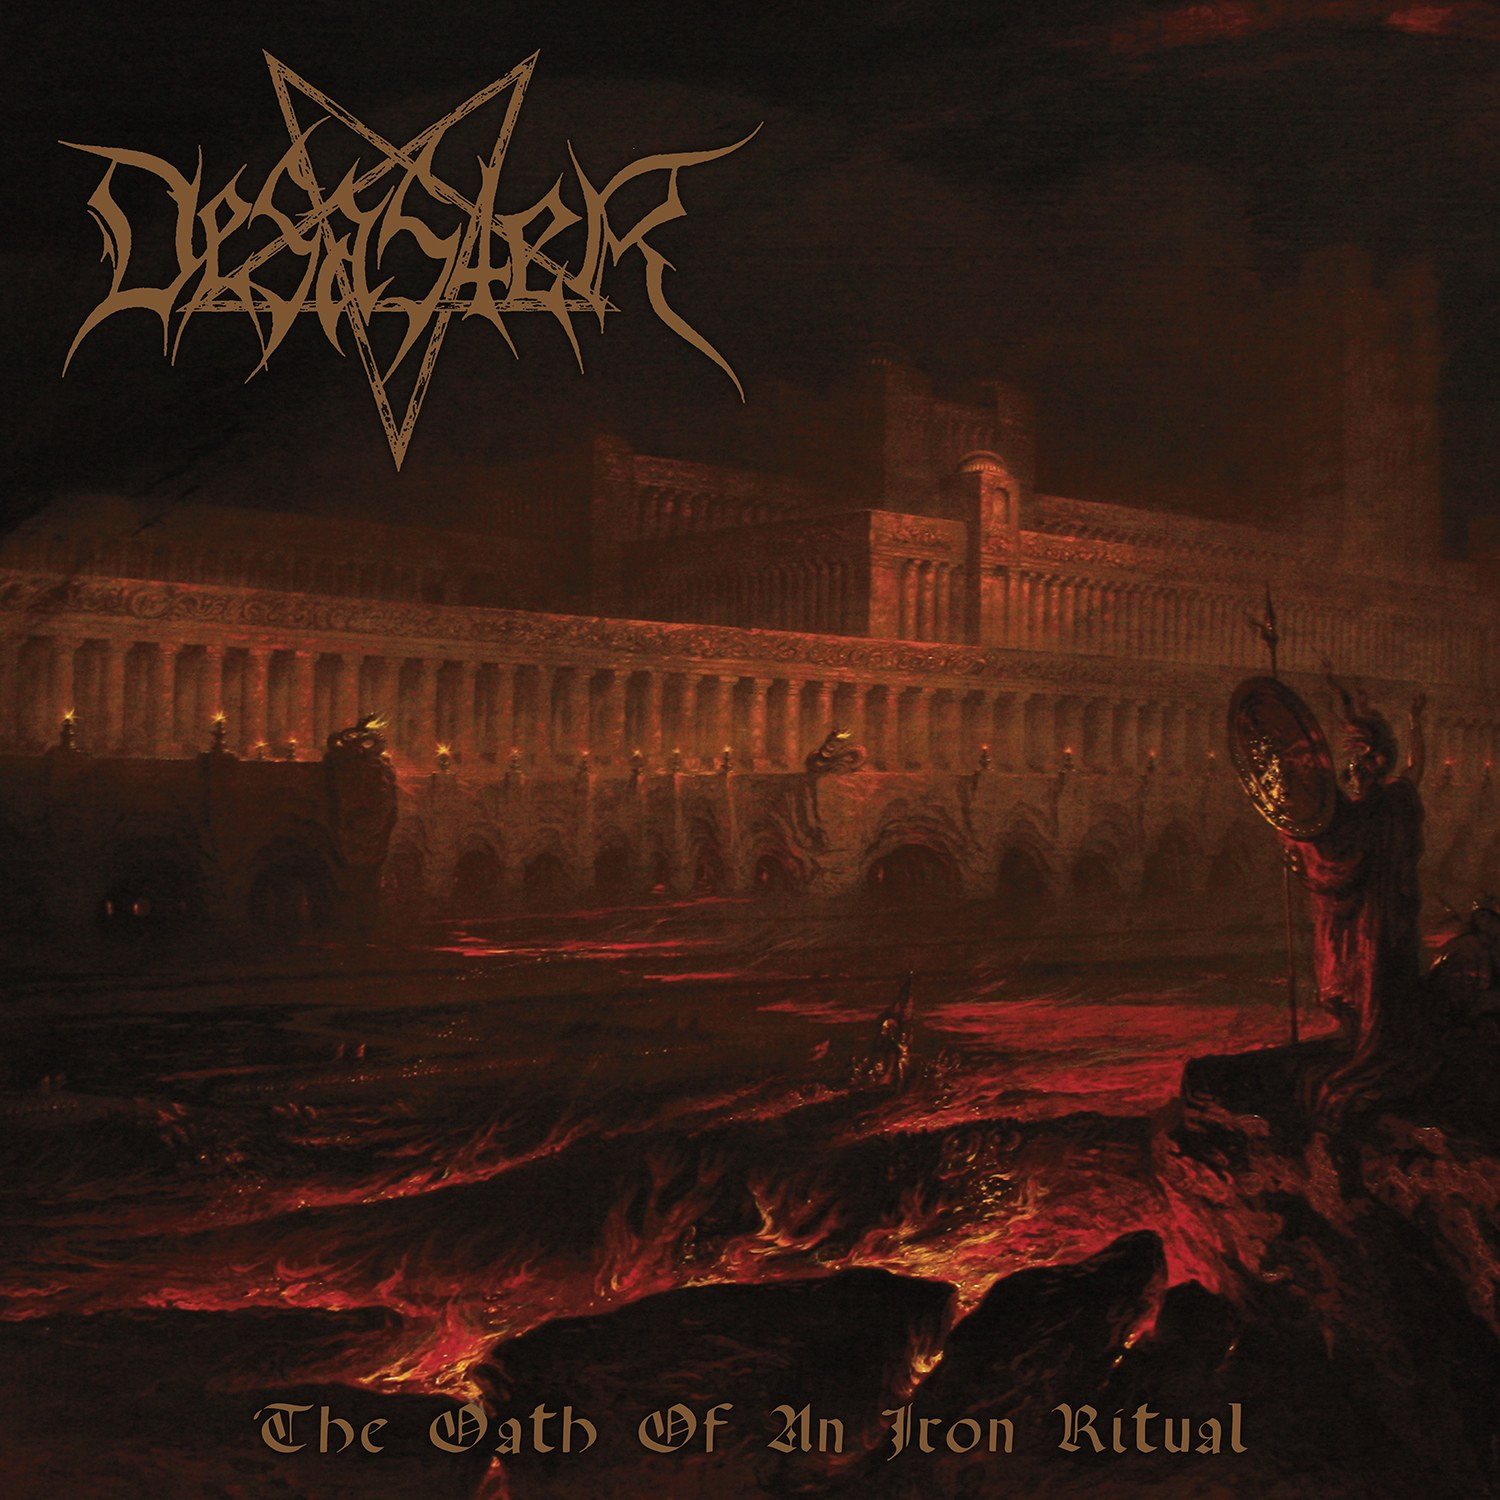 Desaster - The Oath of an Iron Ritual